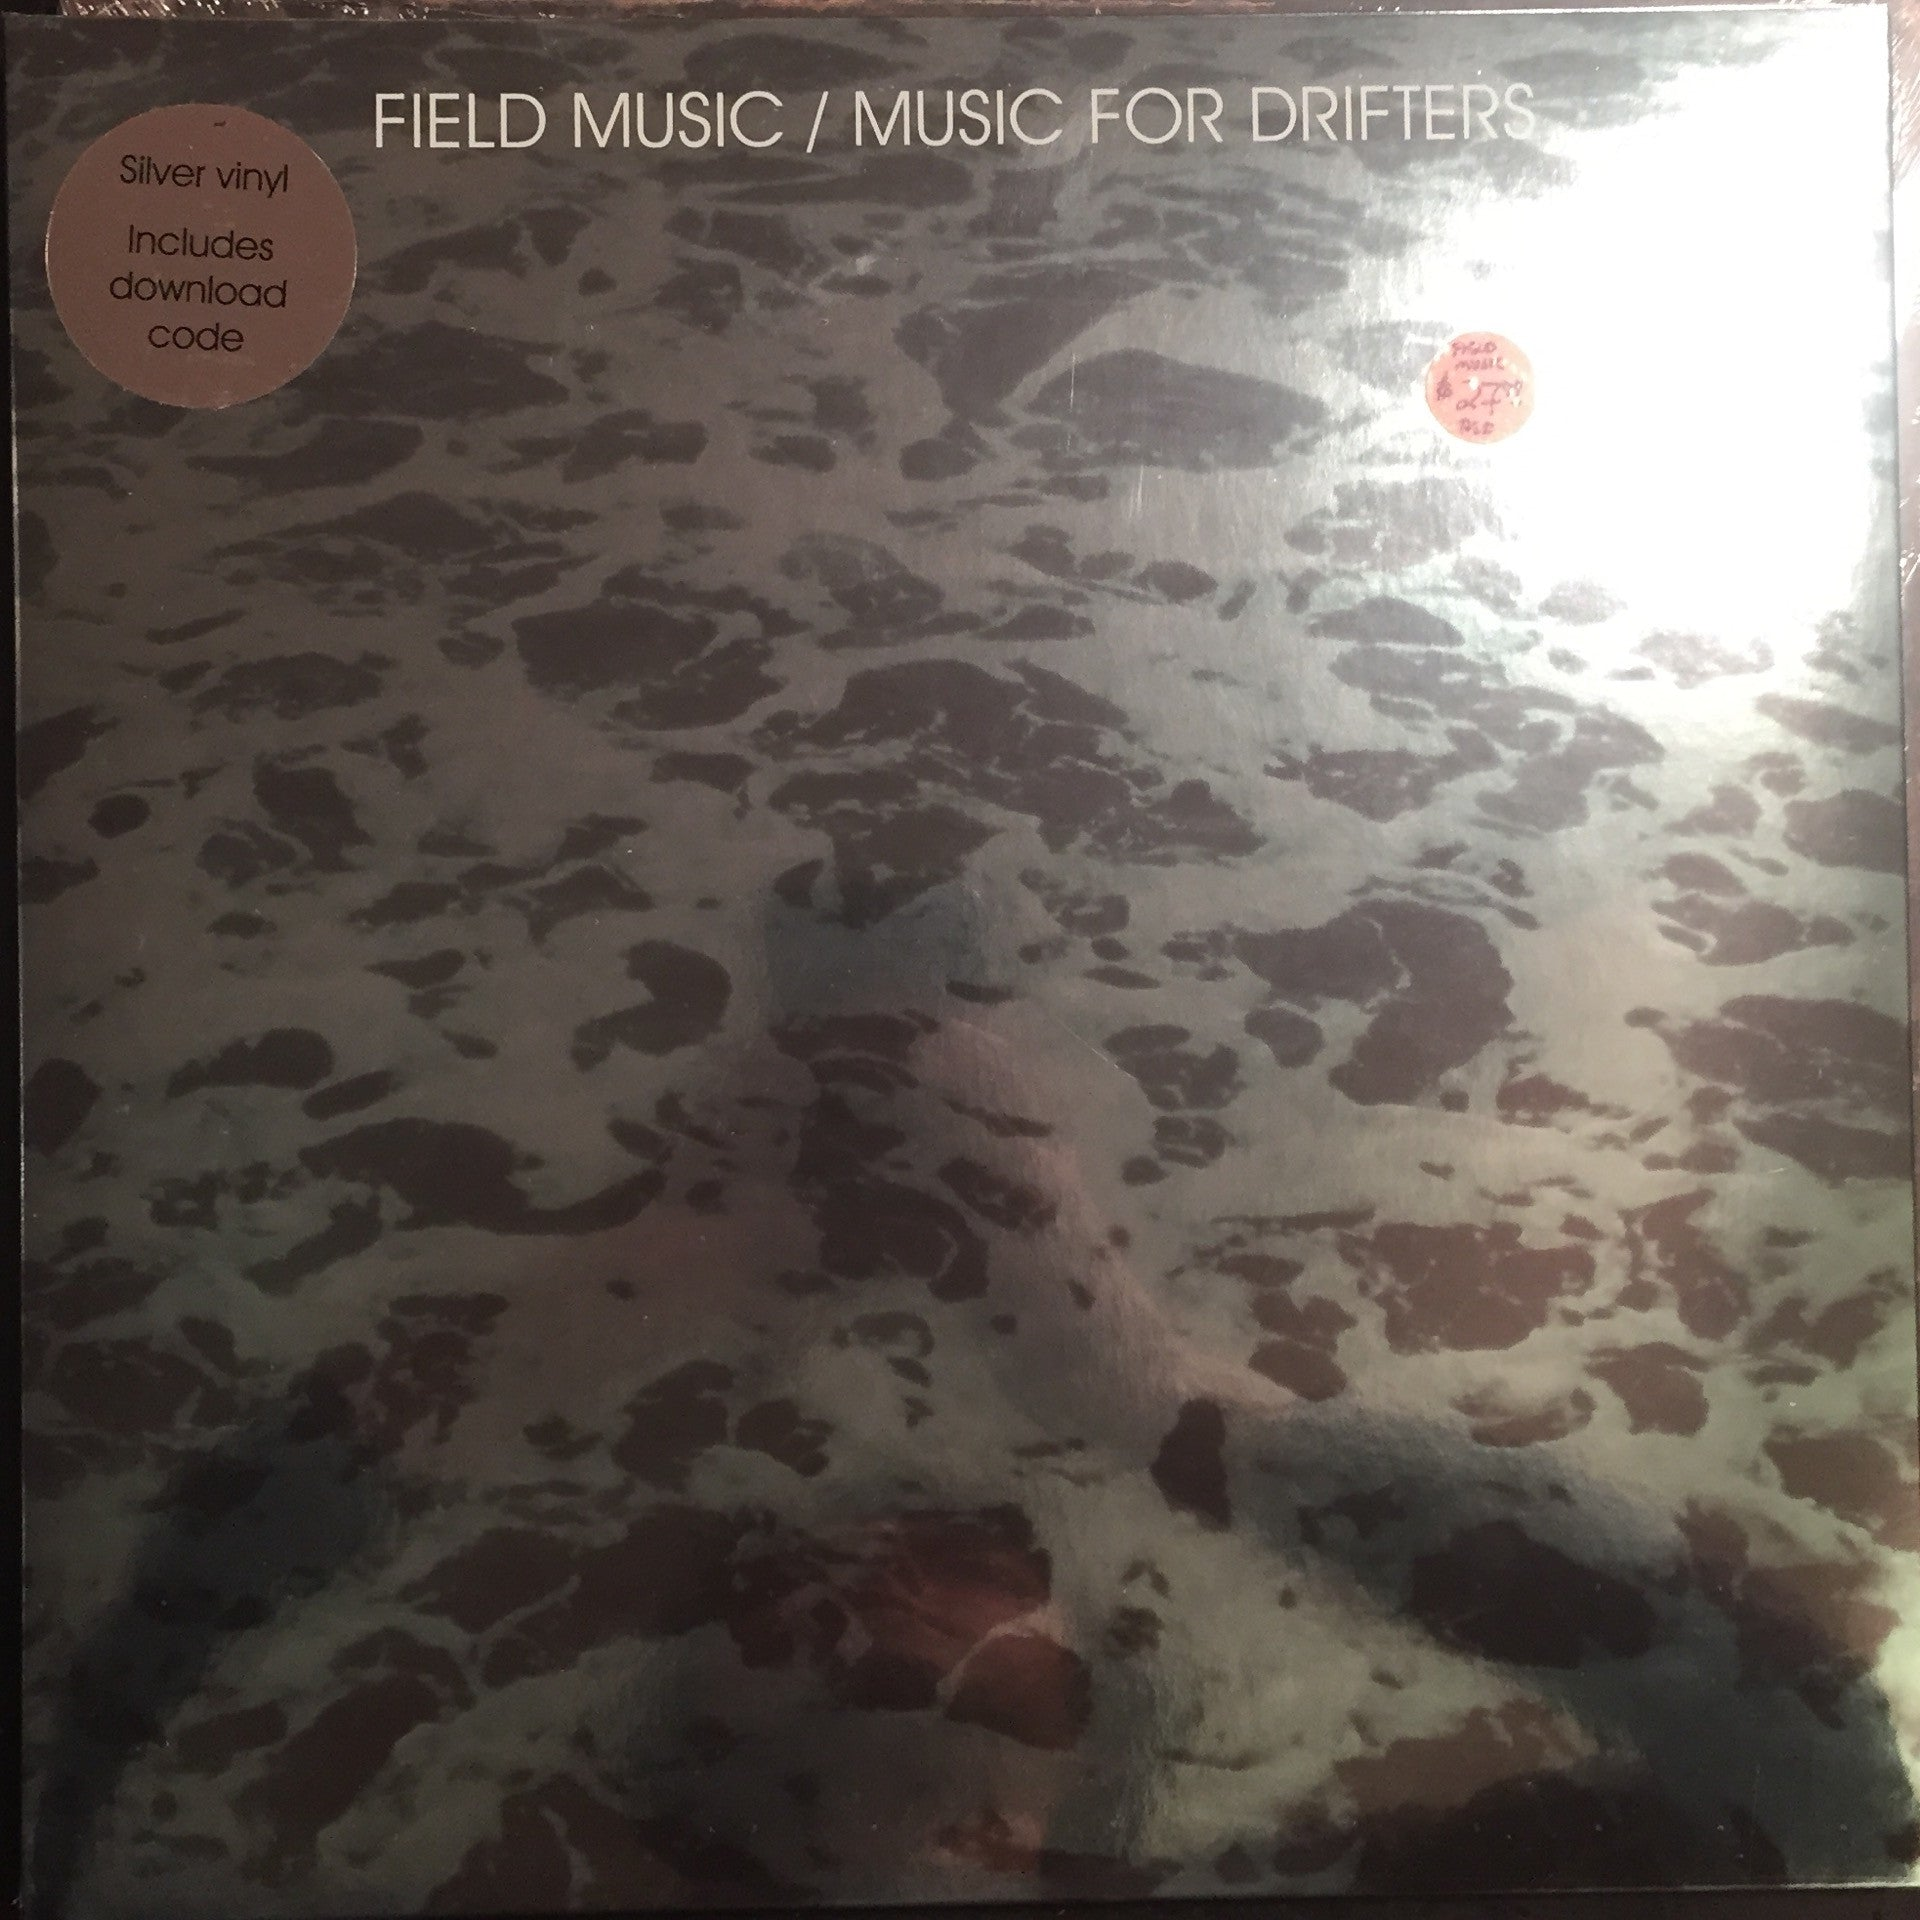 Field Music - Music For Drifters LP (Silver Vinyl) - RSD 2015